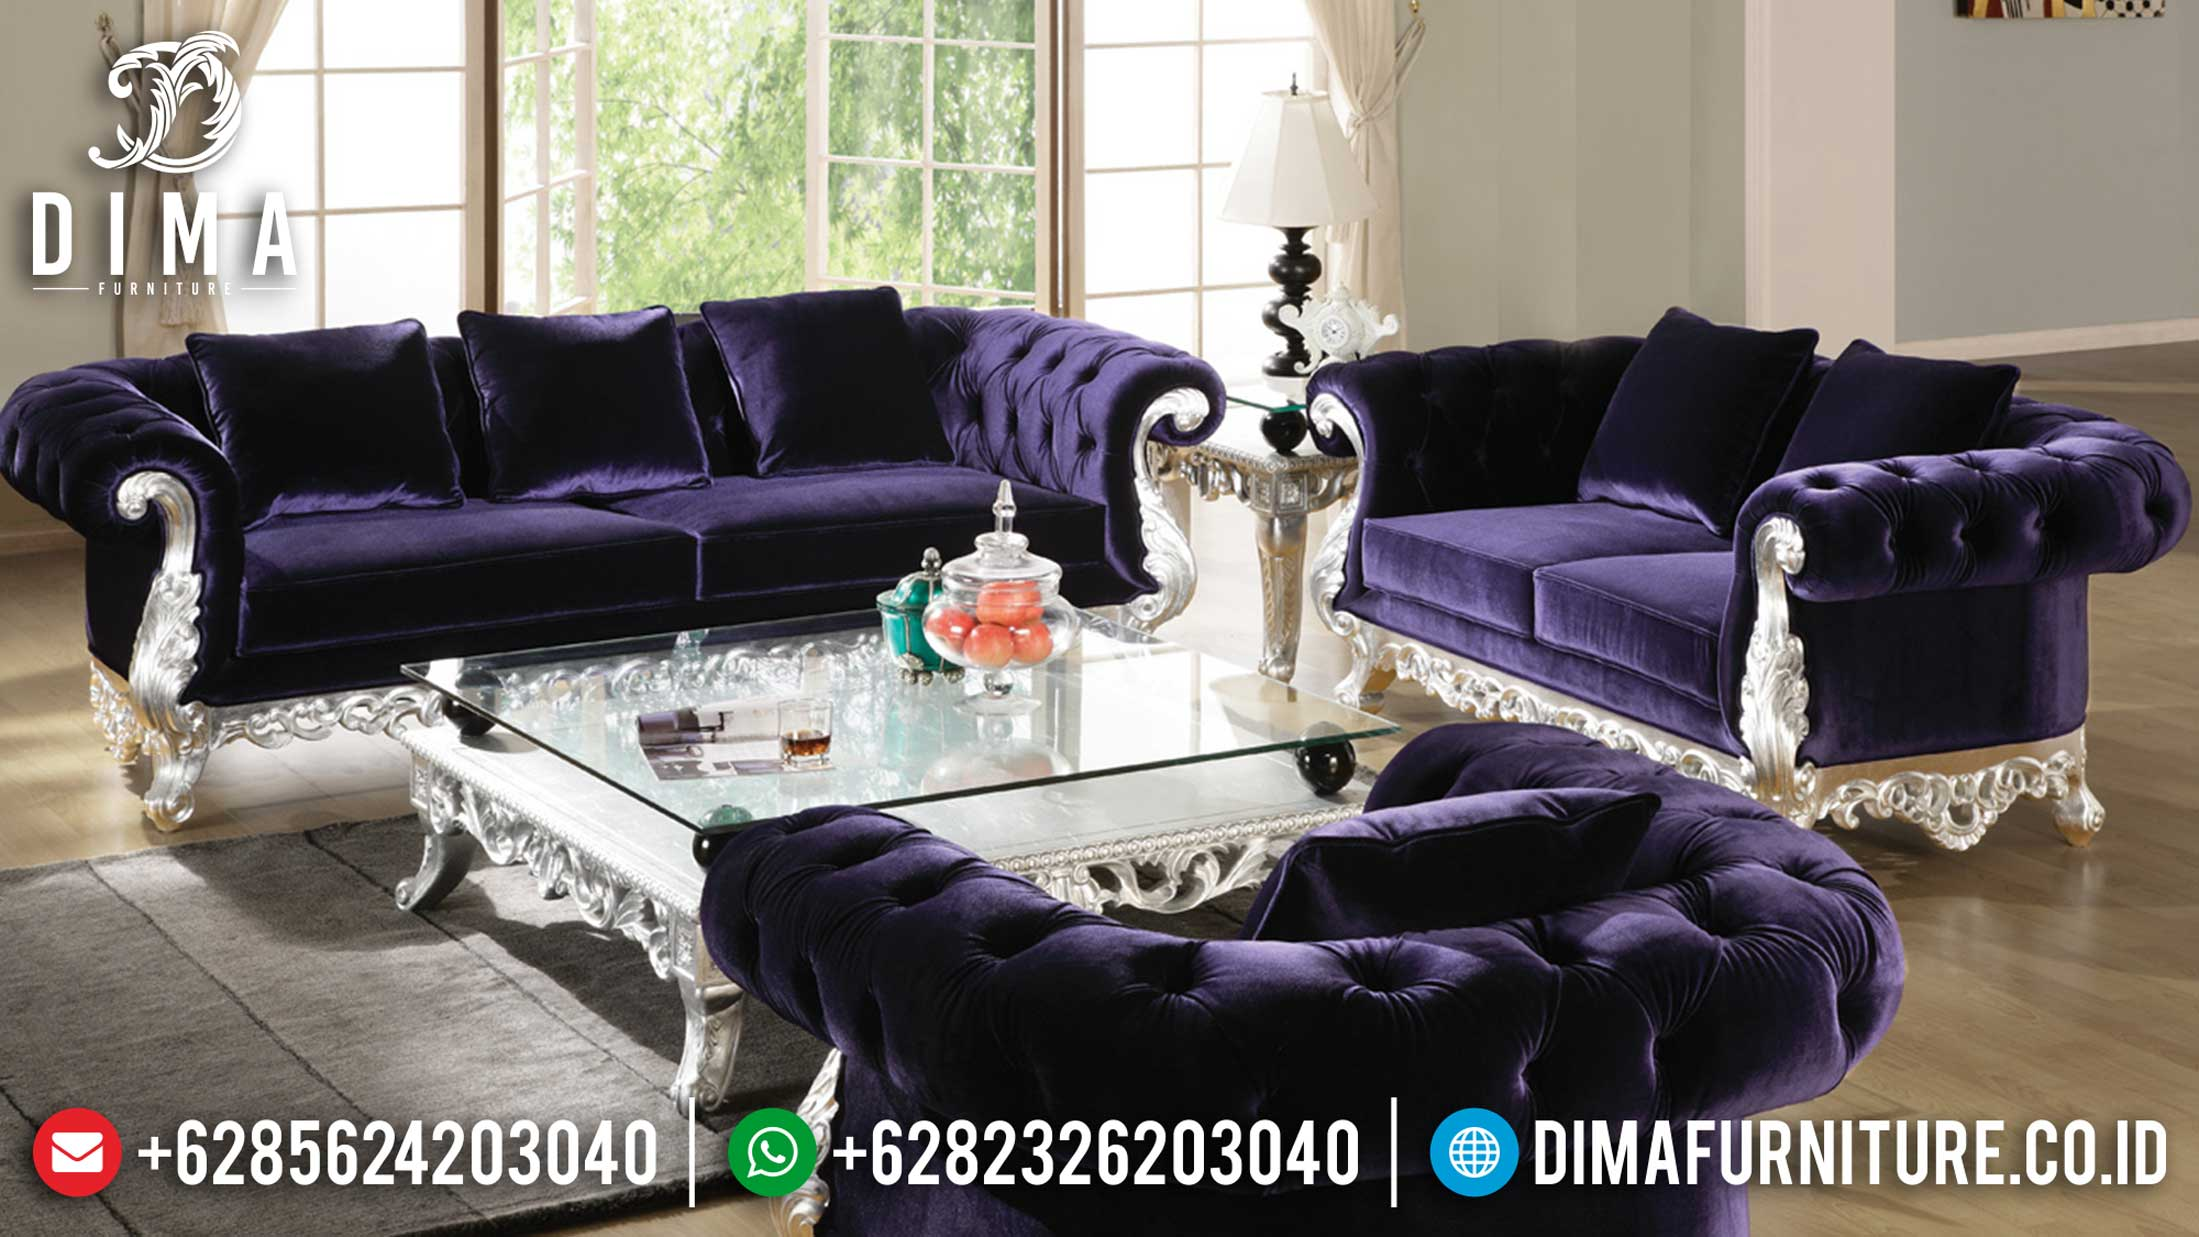 Sofa Tamu Mewah Emma Luxury Carving Classic High Quality Product Furniture Jepara ST-0980